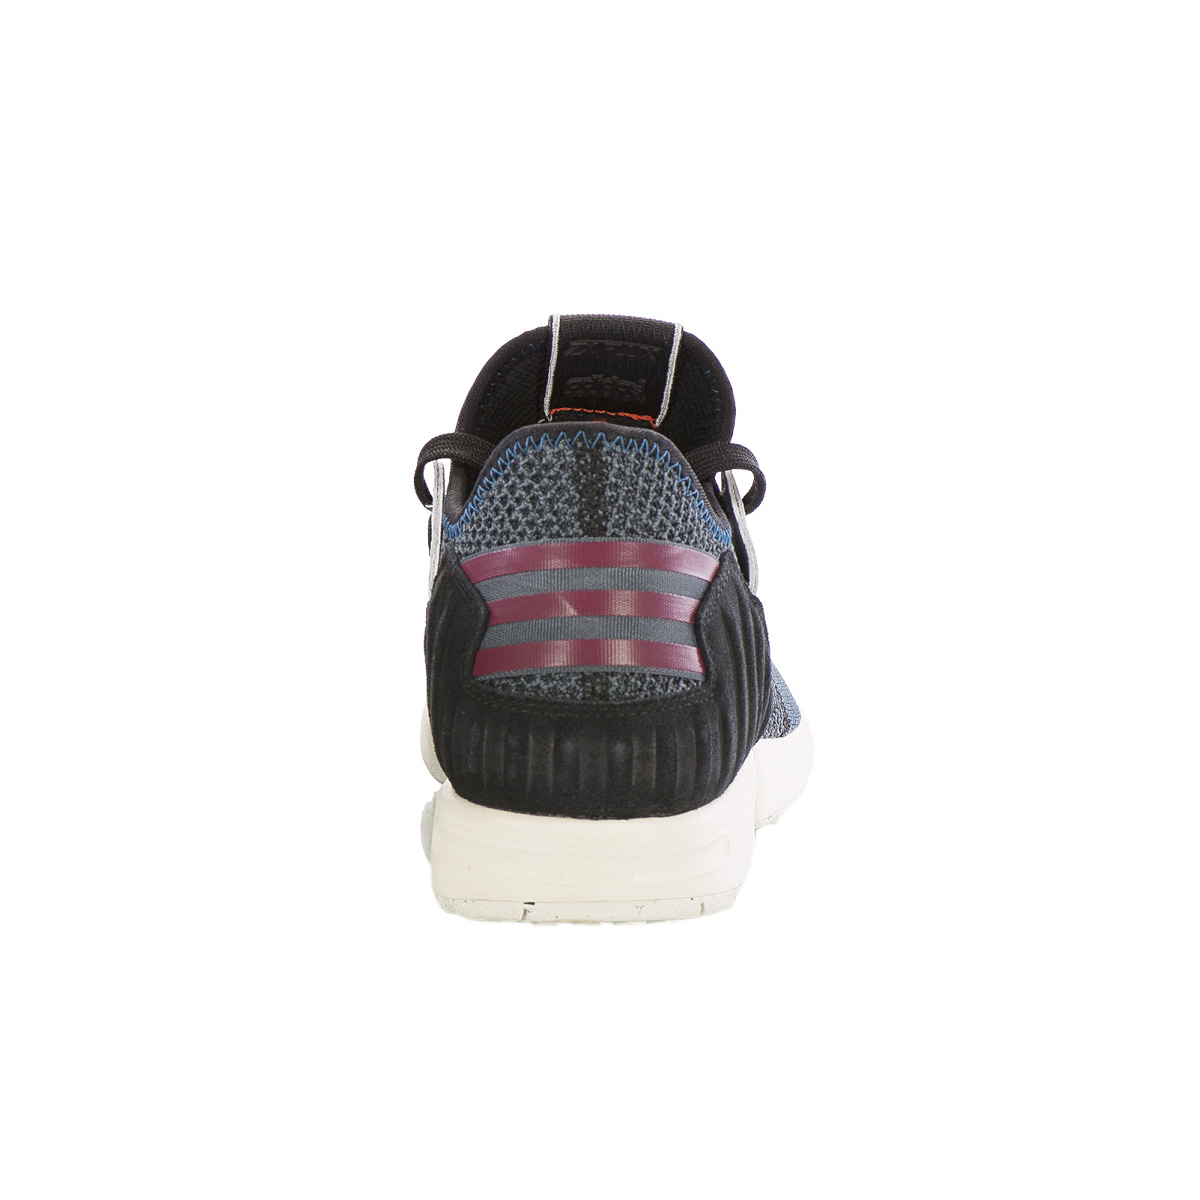 d52d02276195b adidas Originals ZX Flux Plus Black Navy Zx8000 Mens Running Shoes AQ5398 9.  About this product. Picture 1 of 5  Picture 2 of 5  Picture 3 of 5 ...